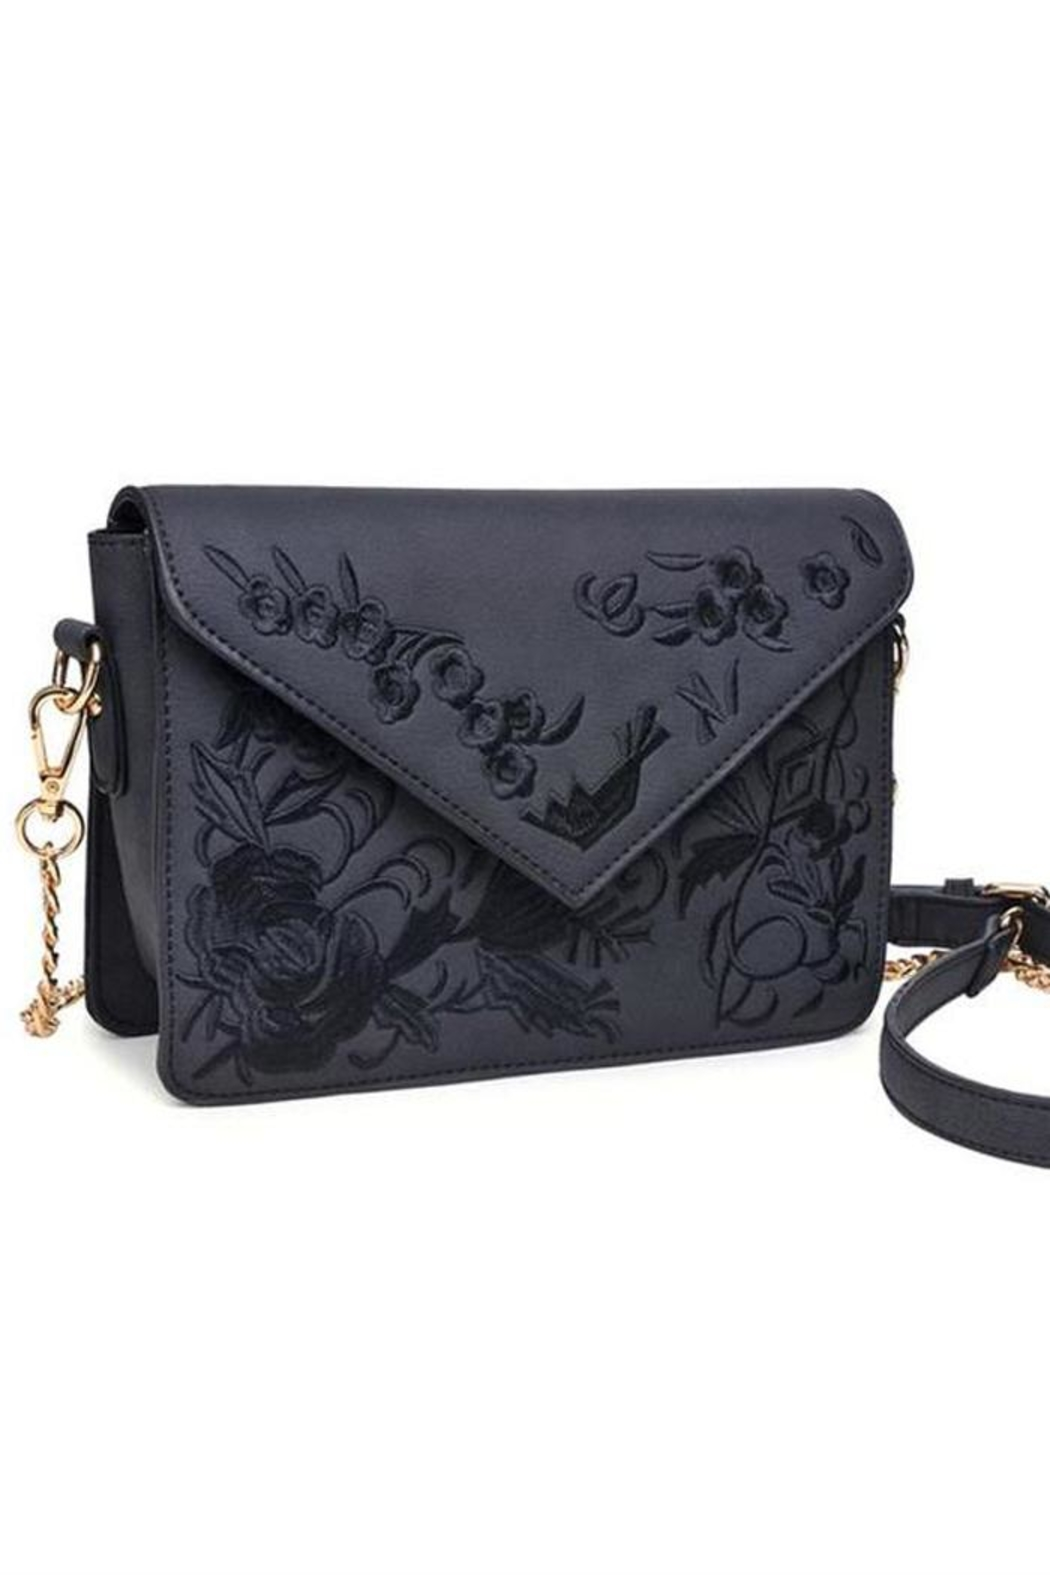 Urban Expressions Arabella Embroidered Crossbody - Main Image